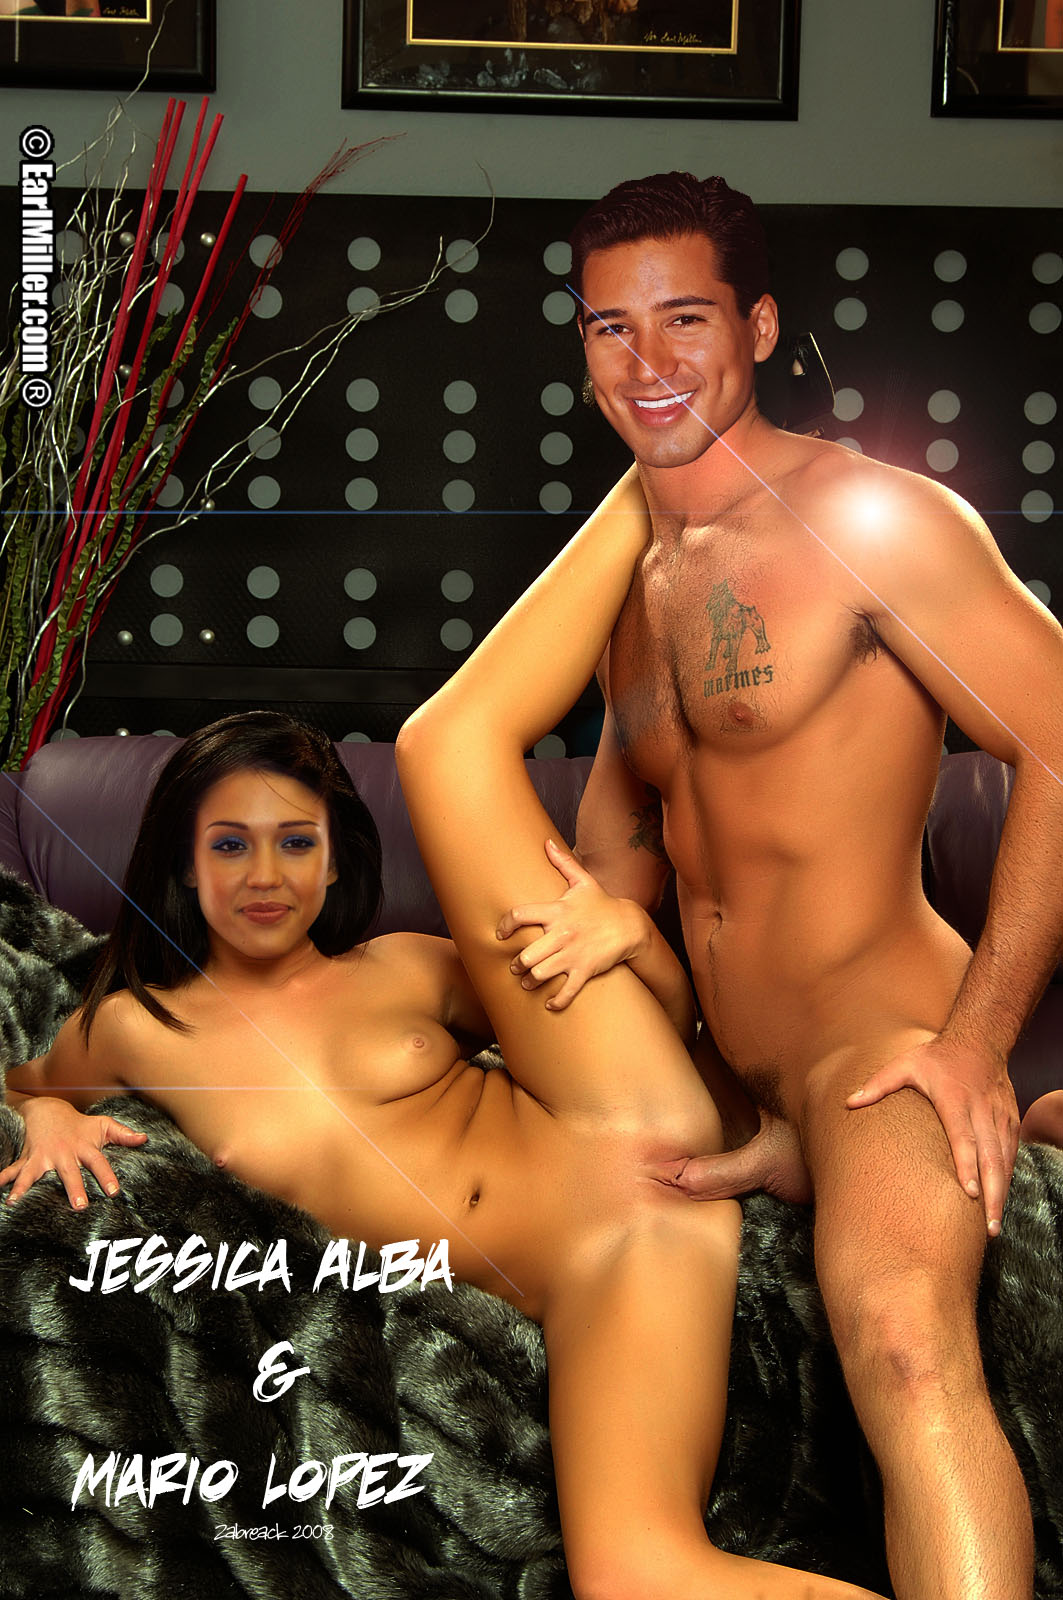 from Leonel mario lopez sex scene